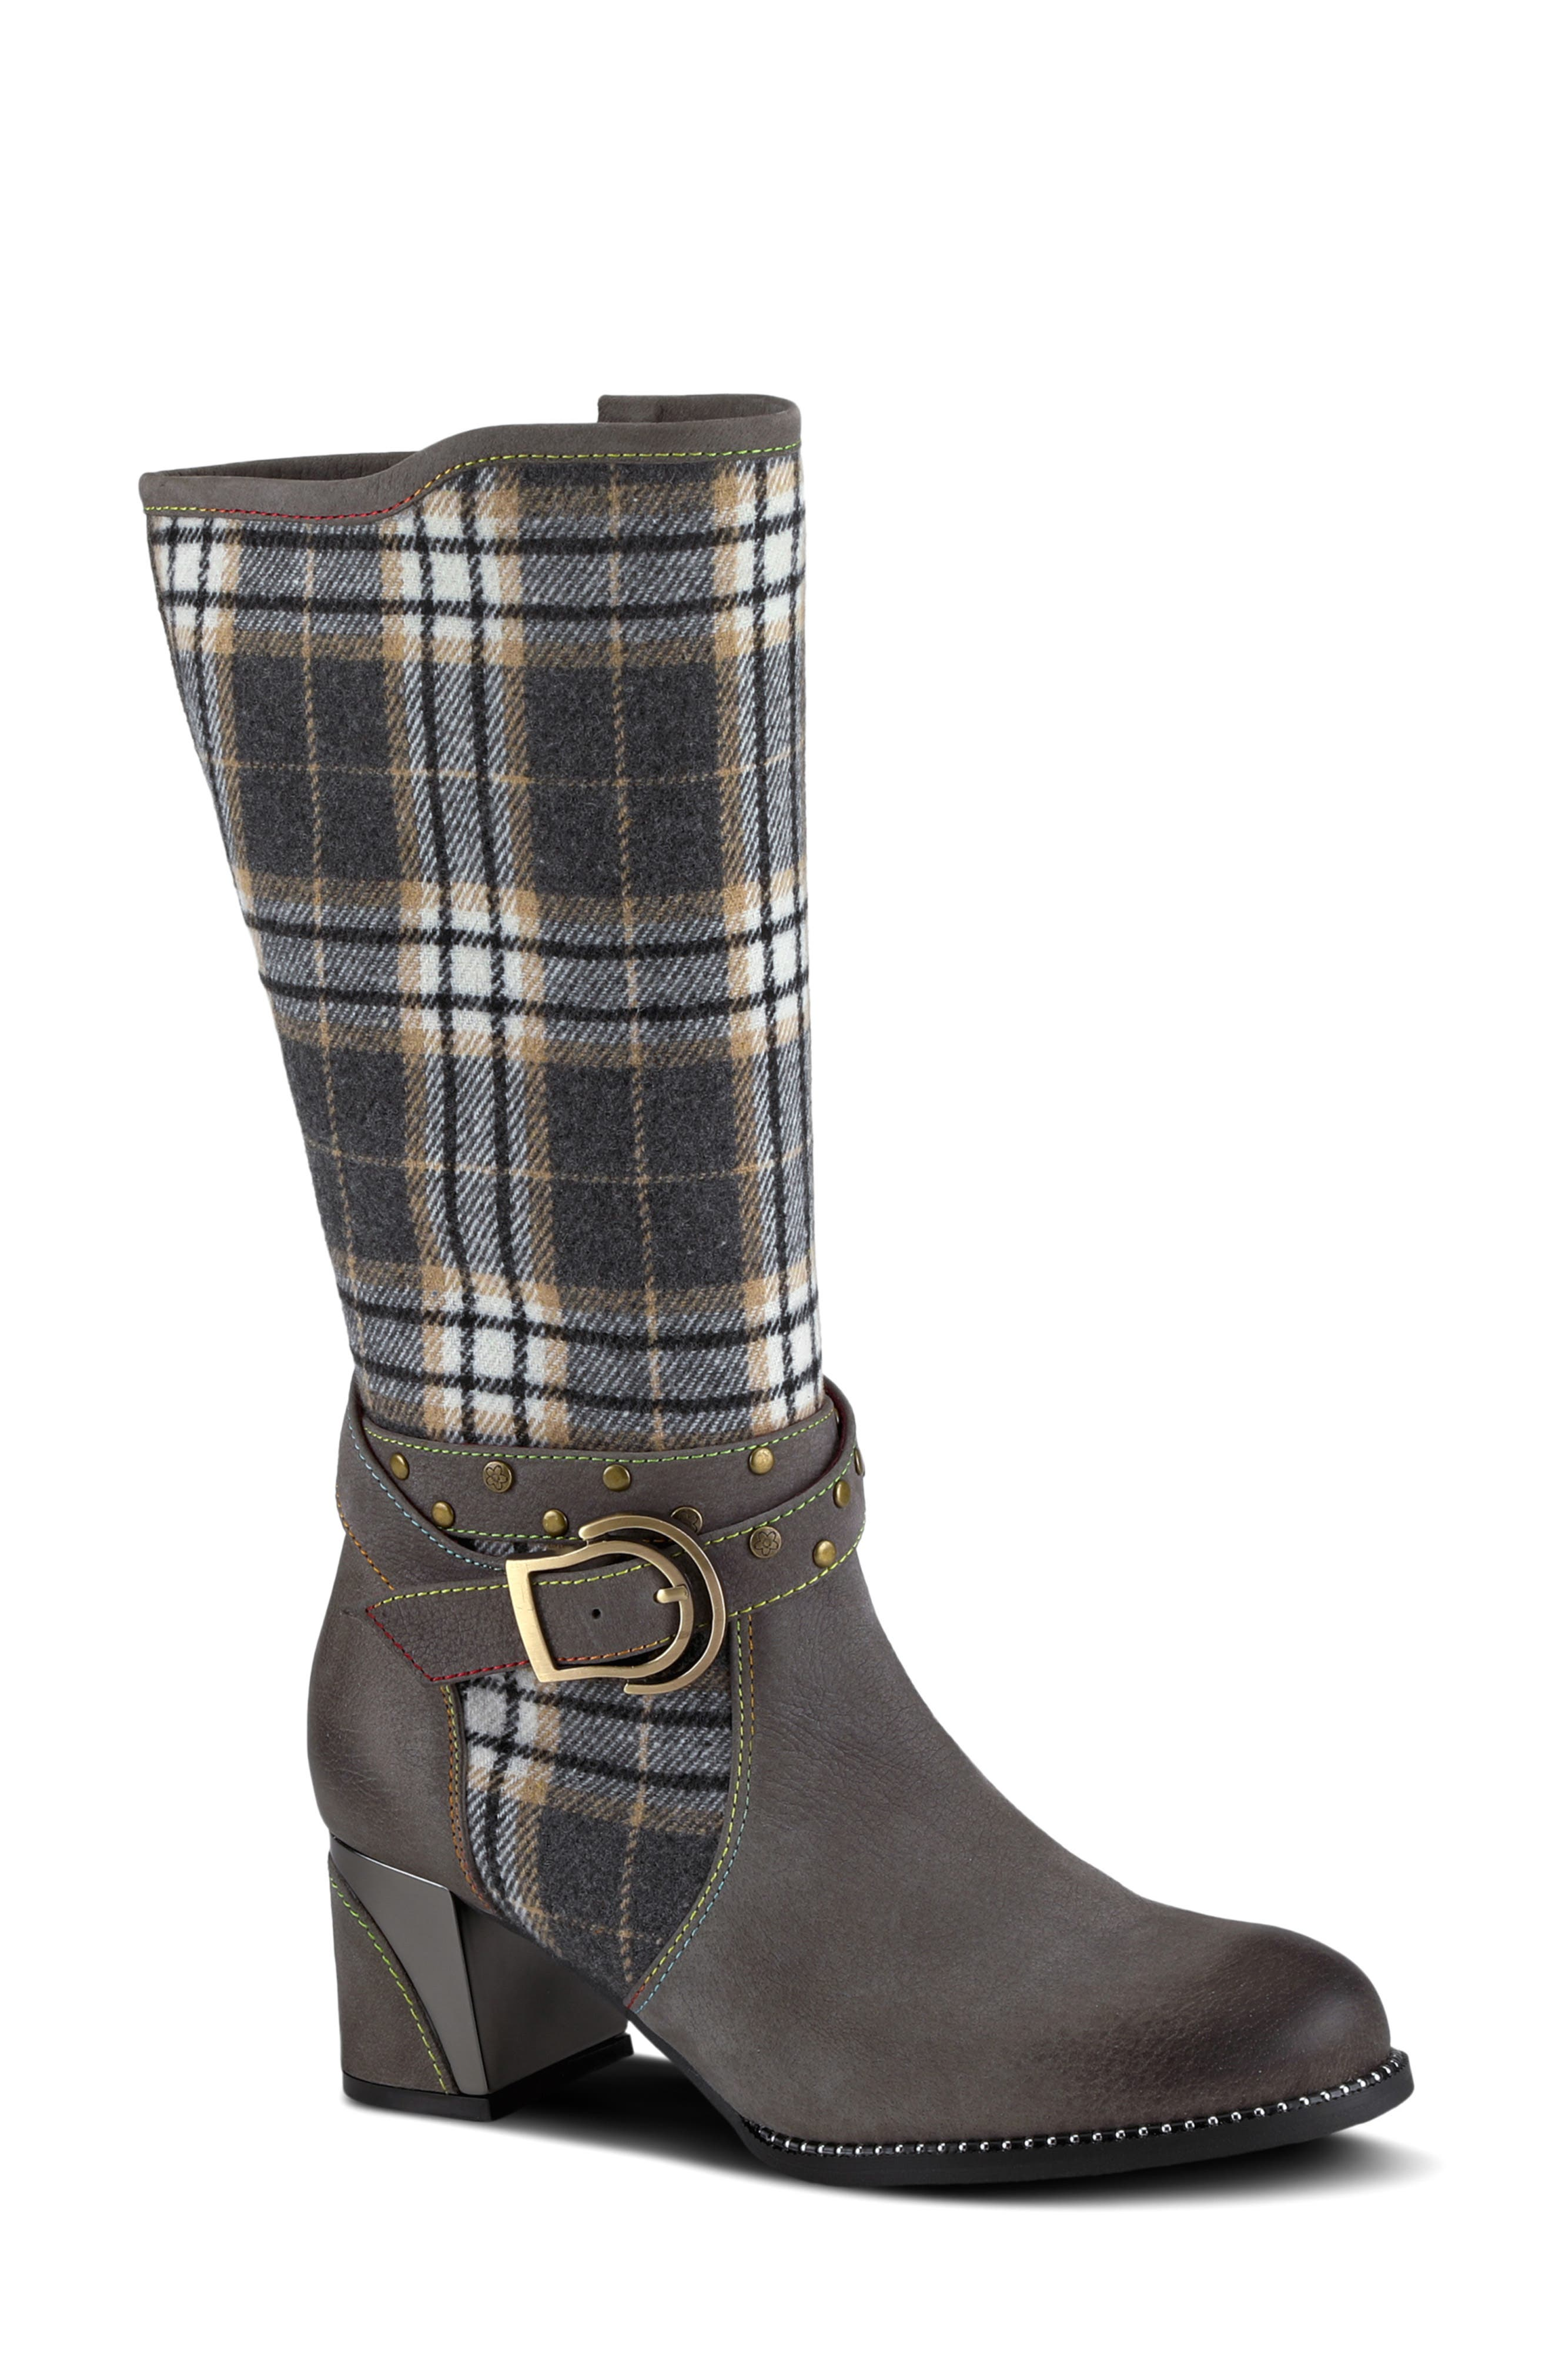 A studded wraparound belt trims the plaid shaft of this warm boot lined with plush faux fur. Style Name:L\\\'Artiste Hunter Faux Fur Lined Boot (Women). Style Number: 6117400. Available in stores.